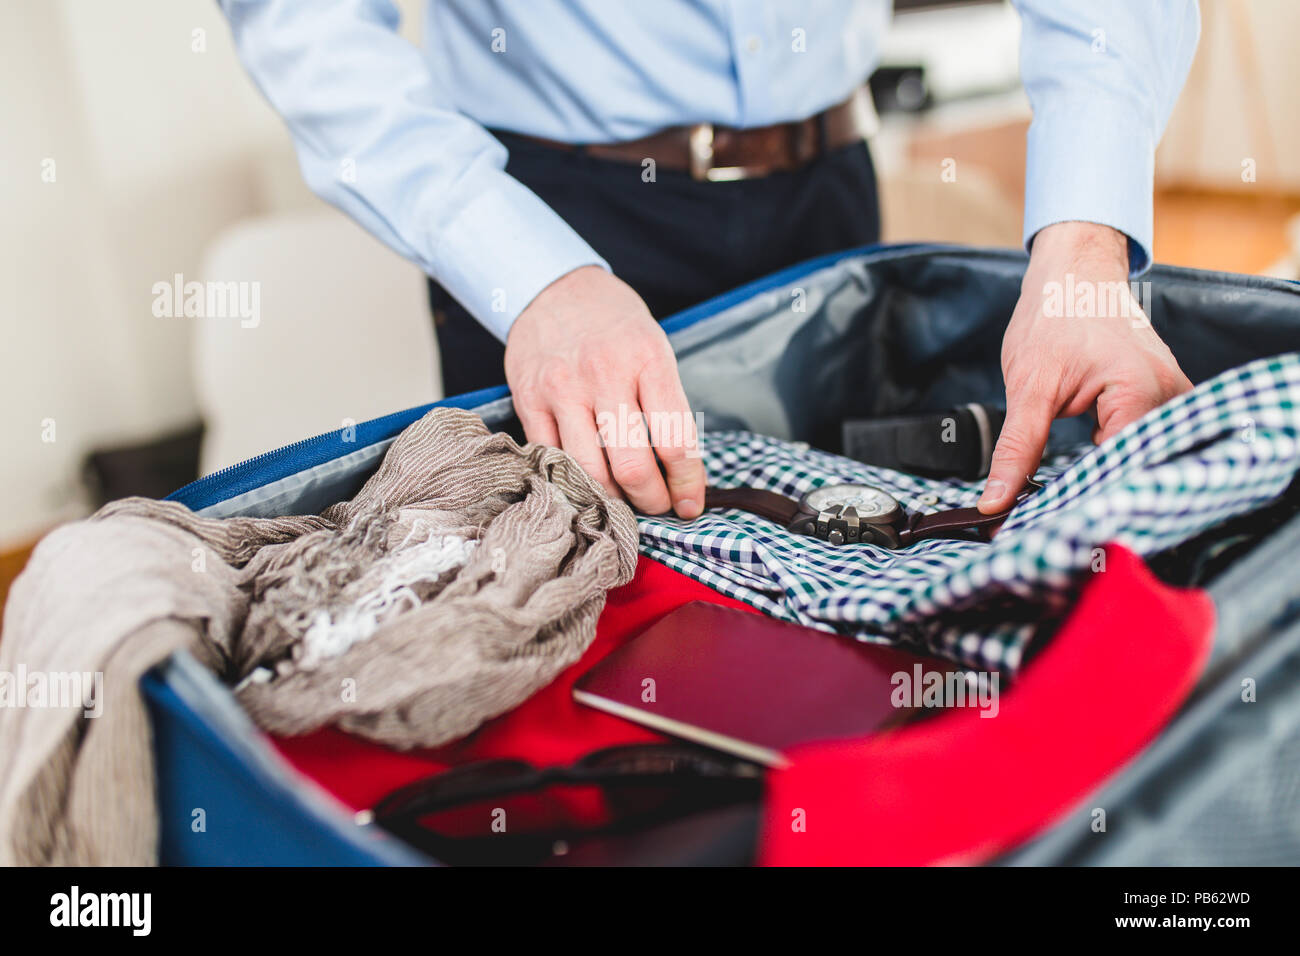 Man preparing for business travelling. Open traveler's bag with passport, clothing and accessories. Travel and vacations concept. - Stock Image